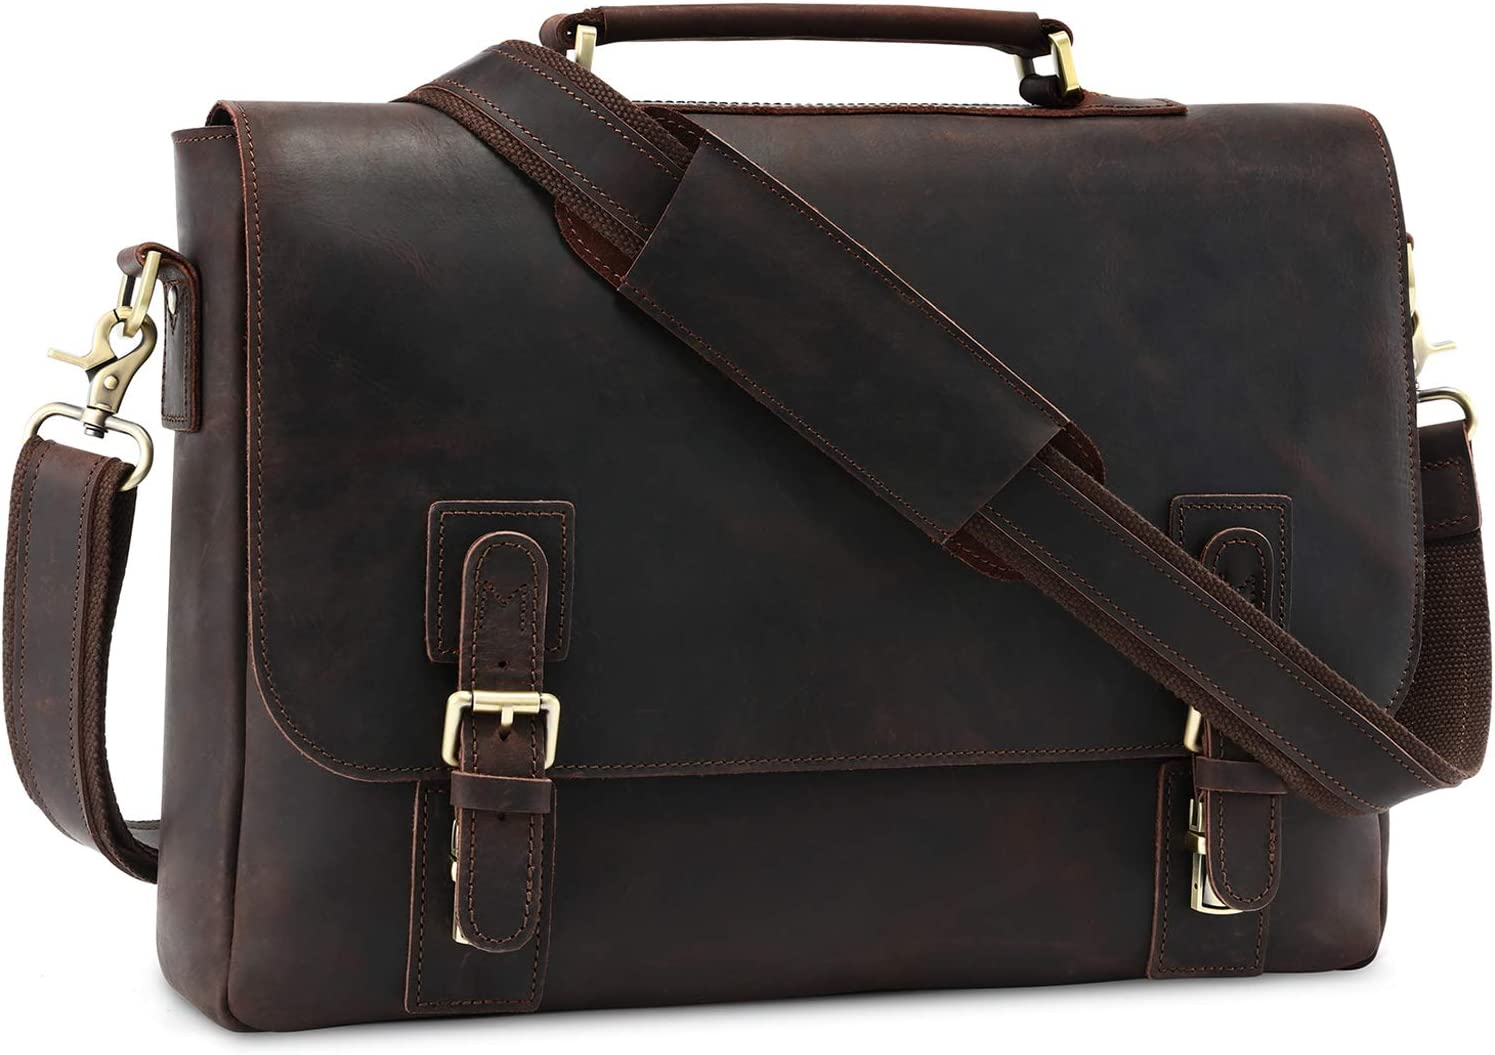 "Kattee Men's Leather Satchel Briefcase, 15.6"" Laptop Messenger Shoulder Bag Tote Dark Coffee"